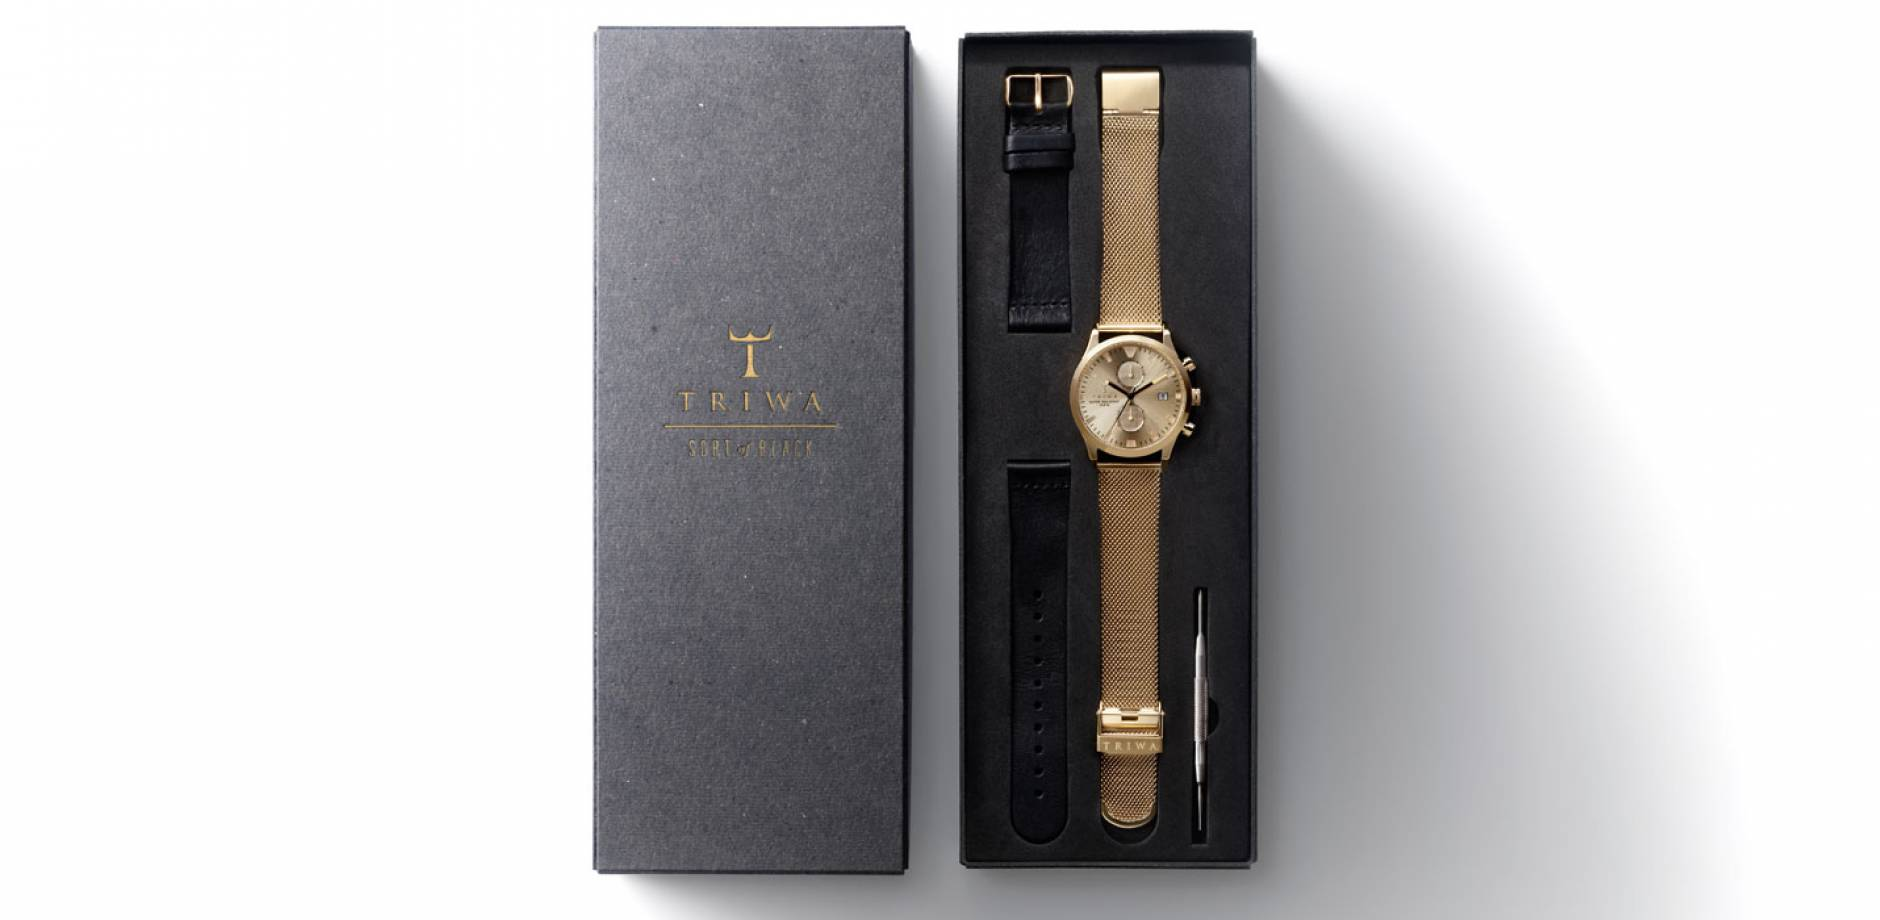 TRIWA - Watch - Sort of Black Gold Chrono